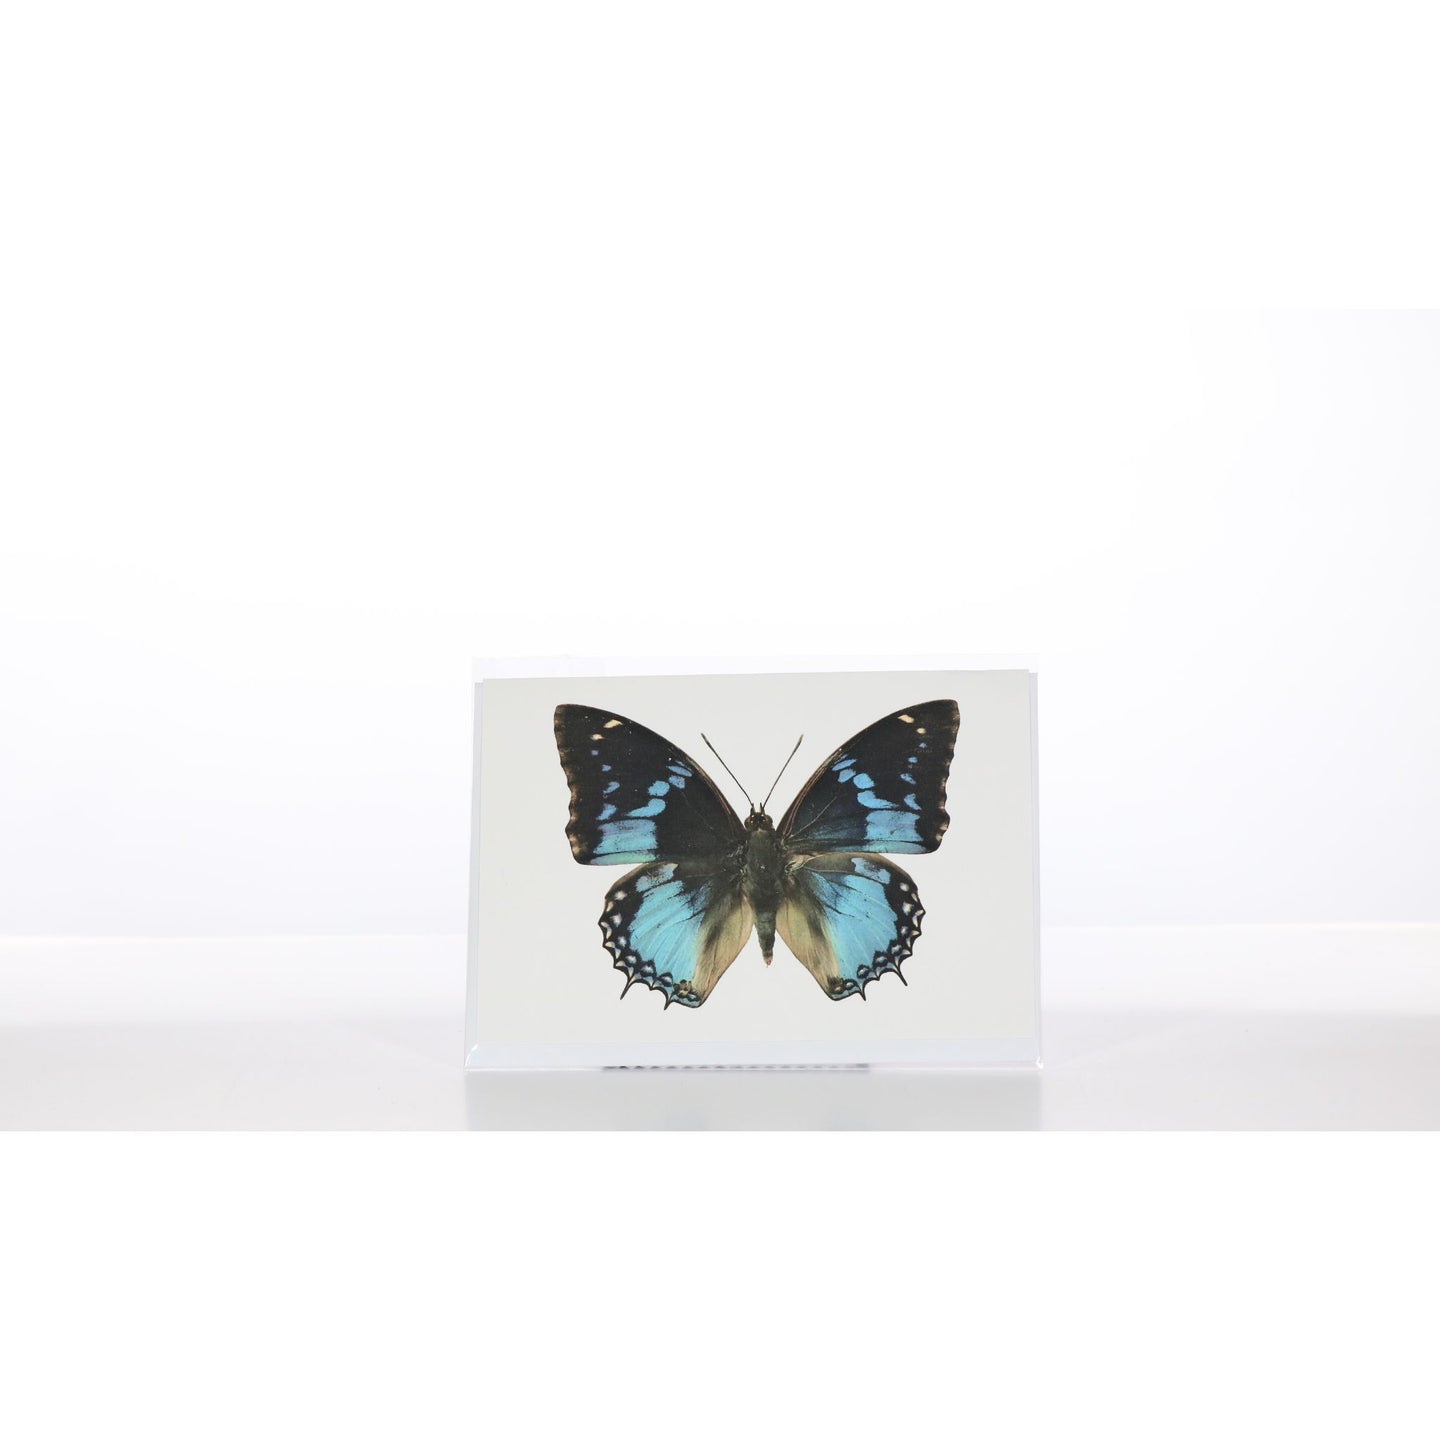 Greeting Card GC5 - Insecta Etcetera